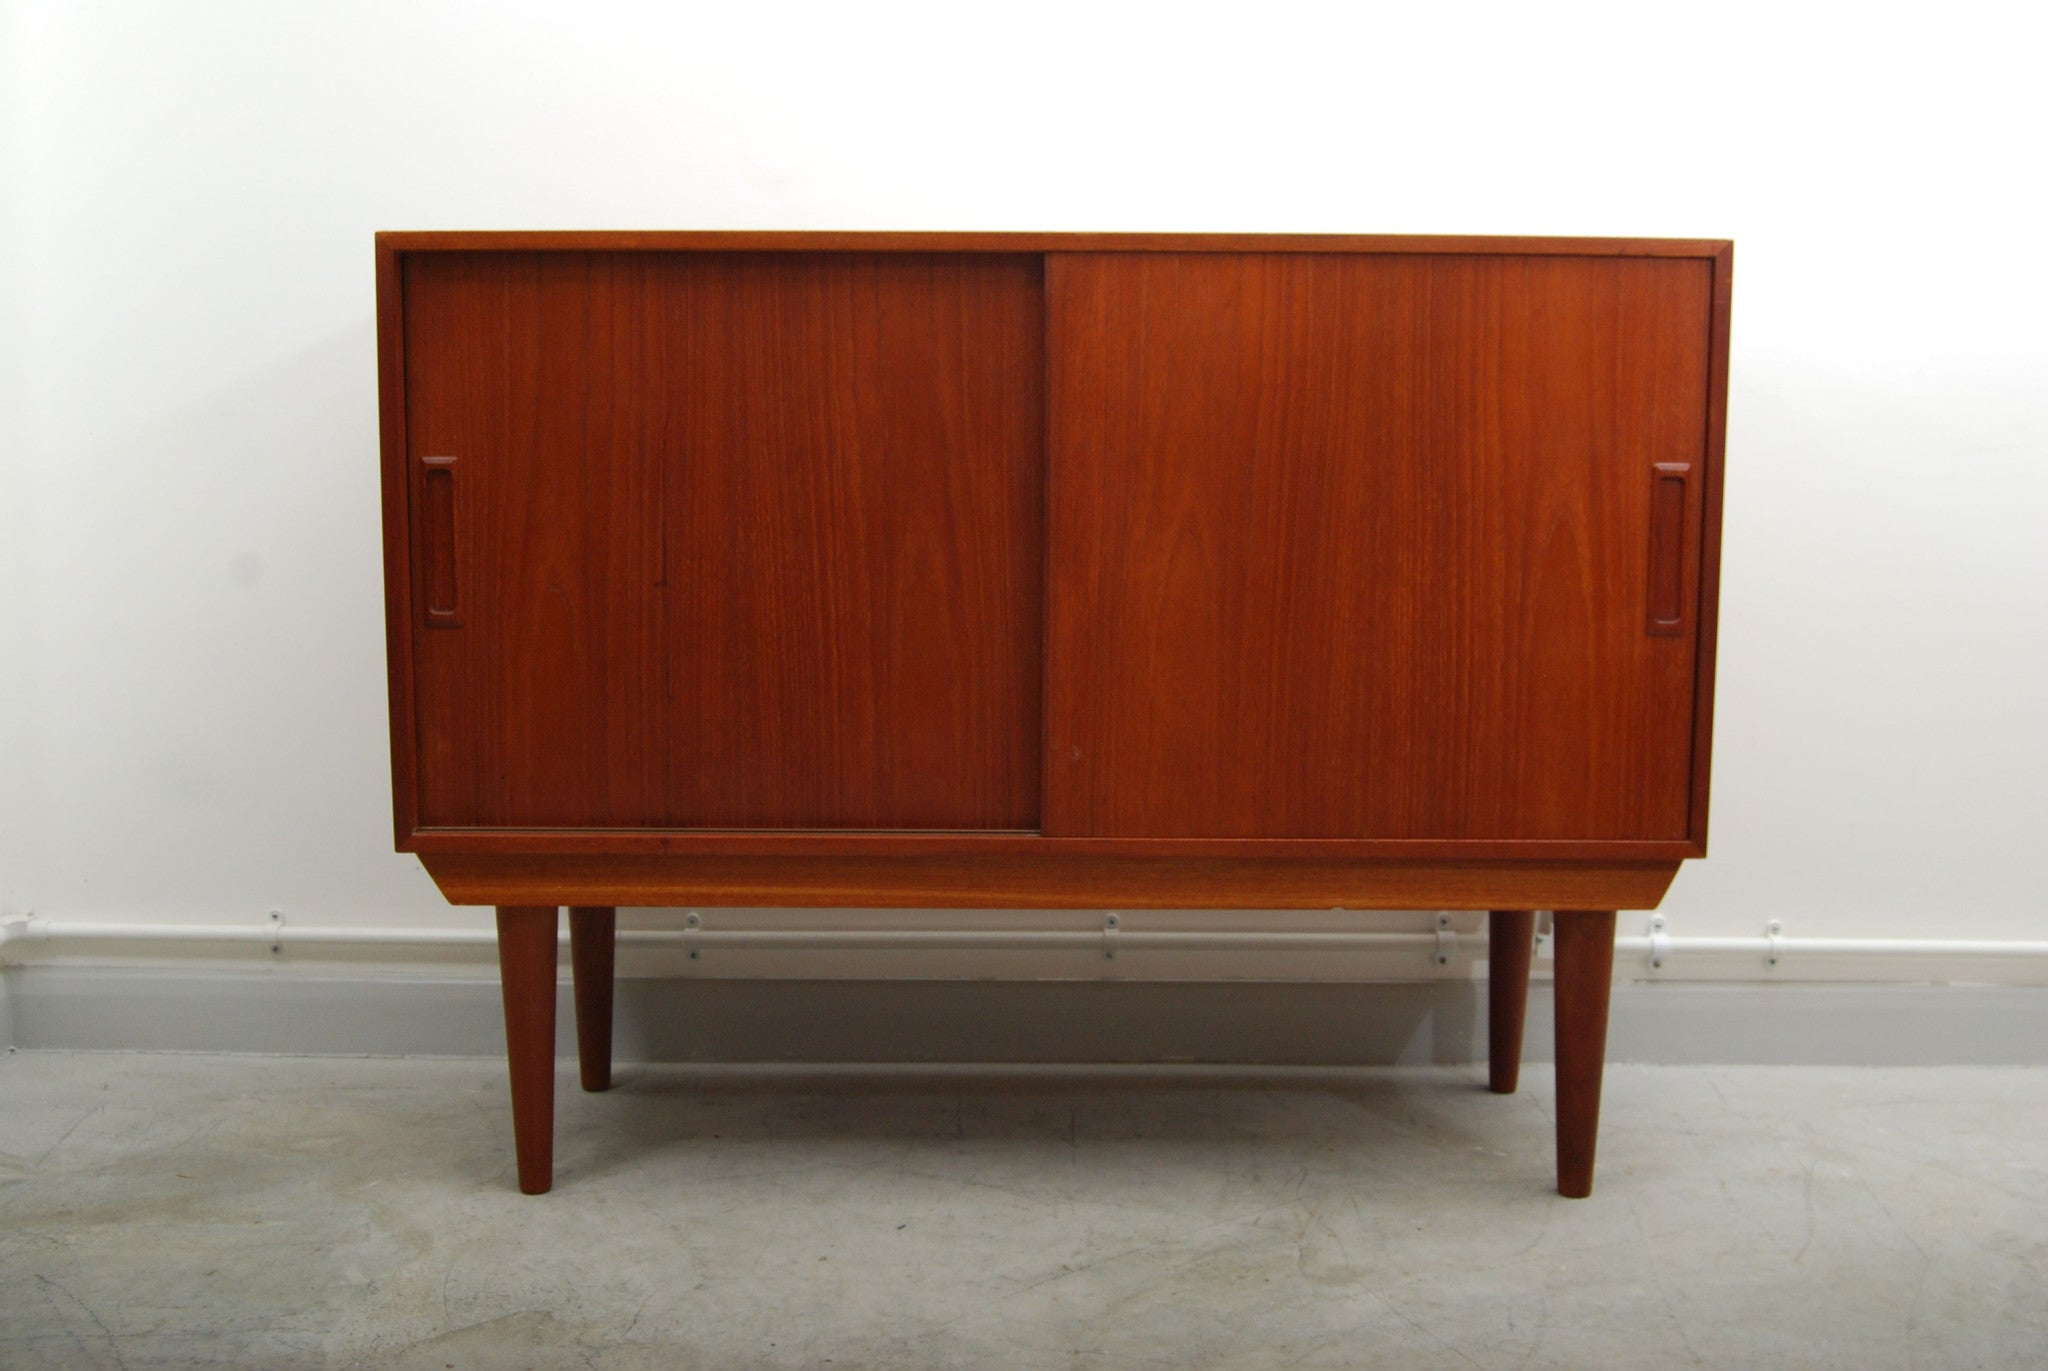 Chase & Sorensen Short sideboard by Atom